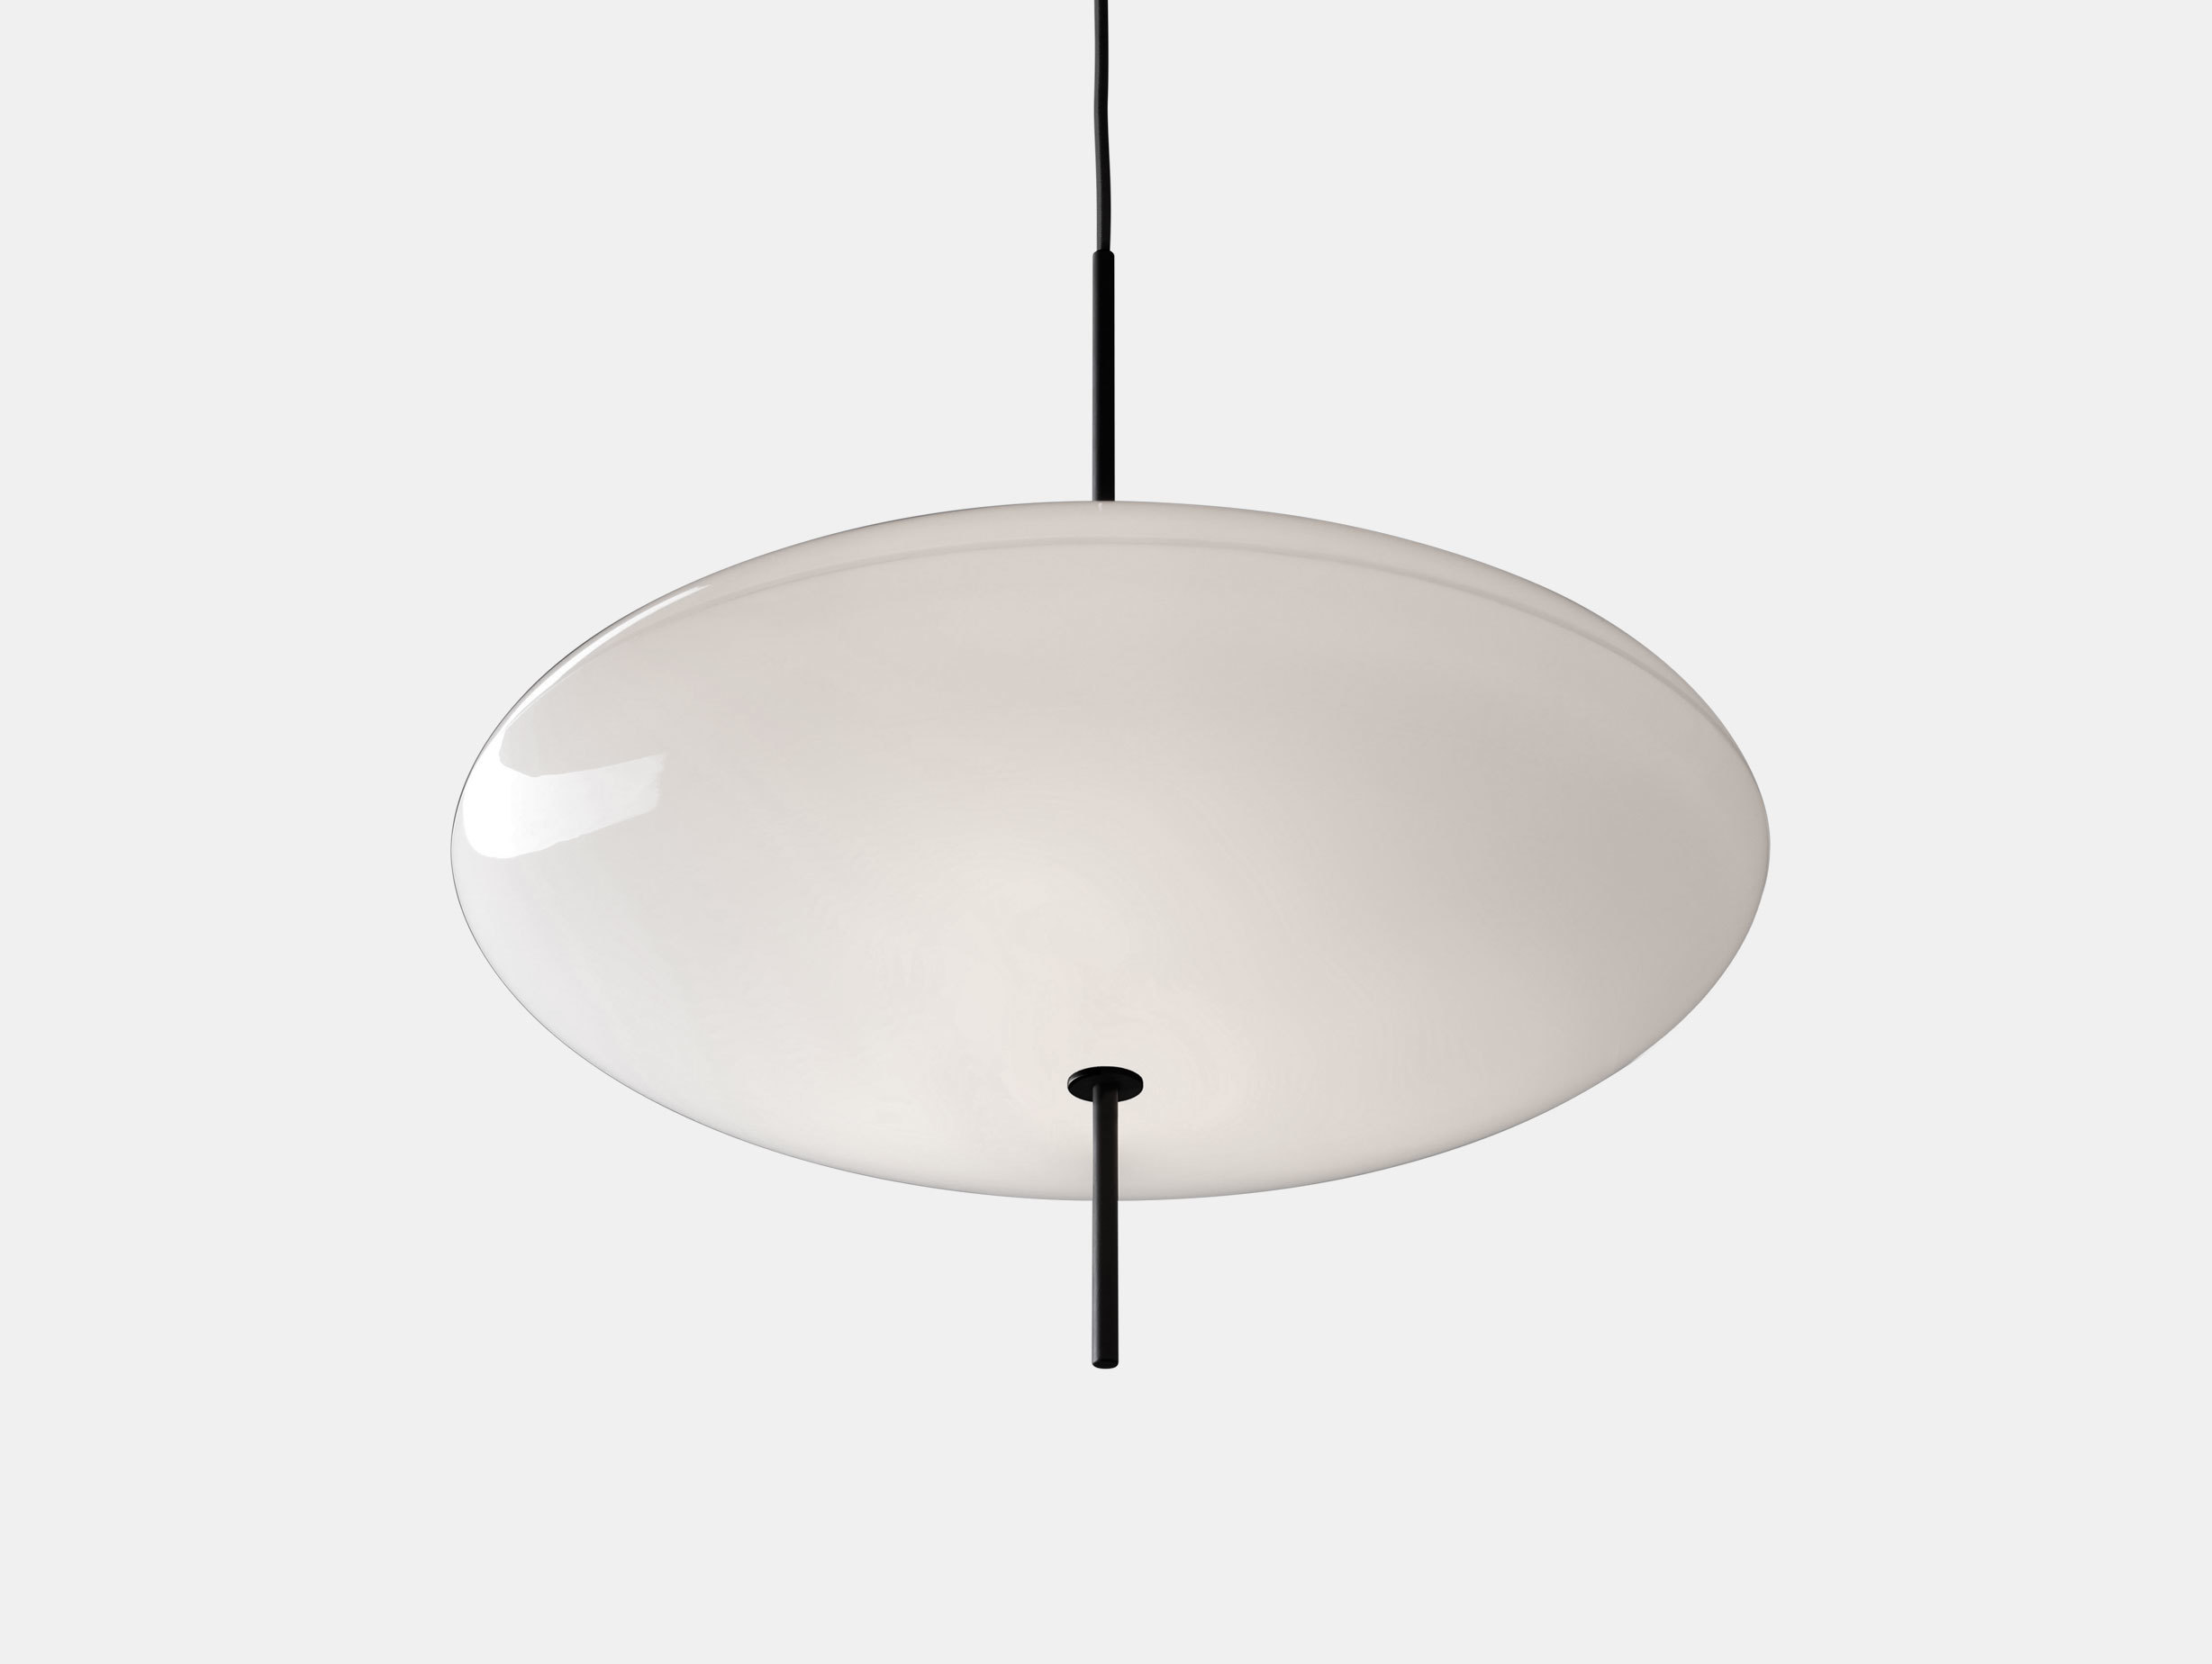 Model 2065 Suspension Lamp image 1